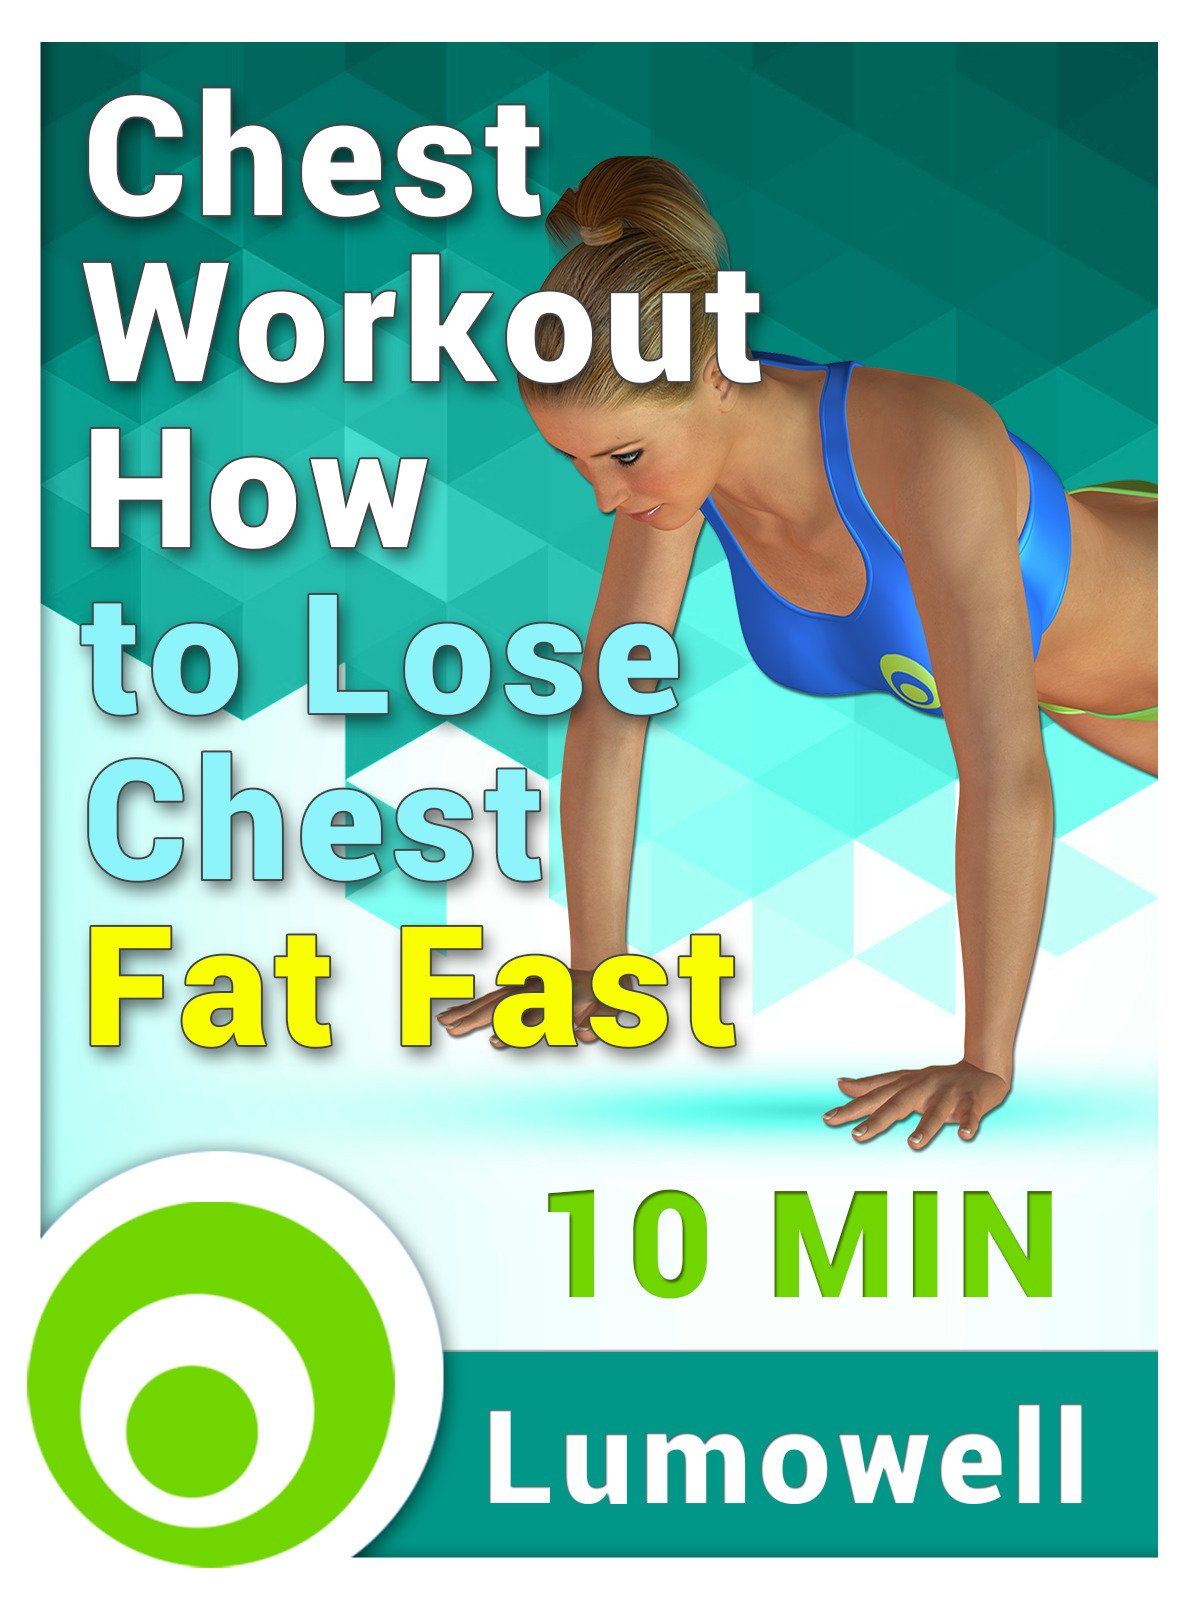 Chest Workout: How to Lose Chest Fat Fast